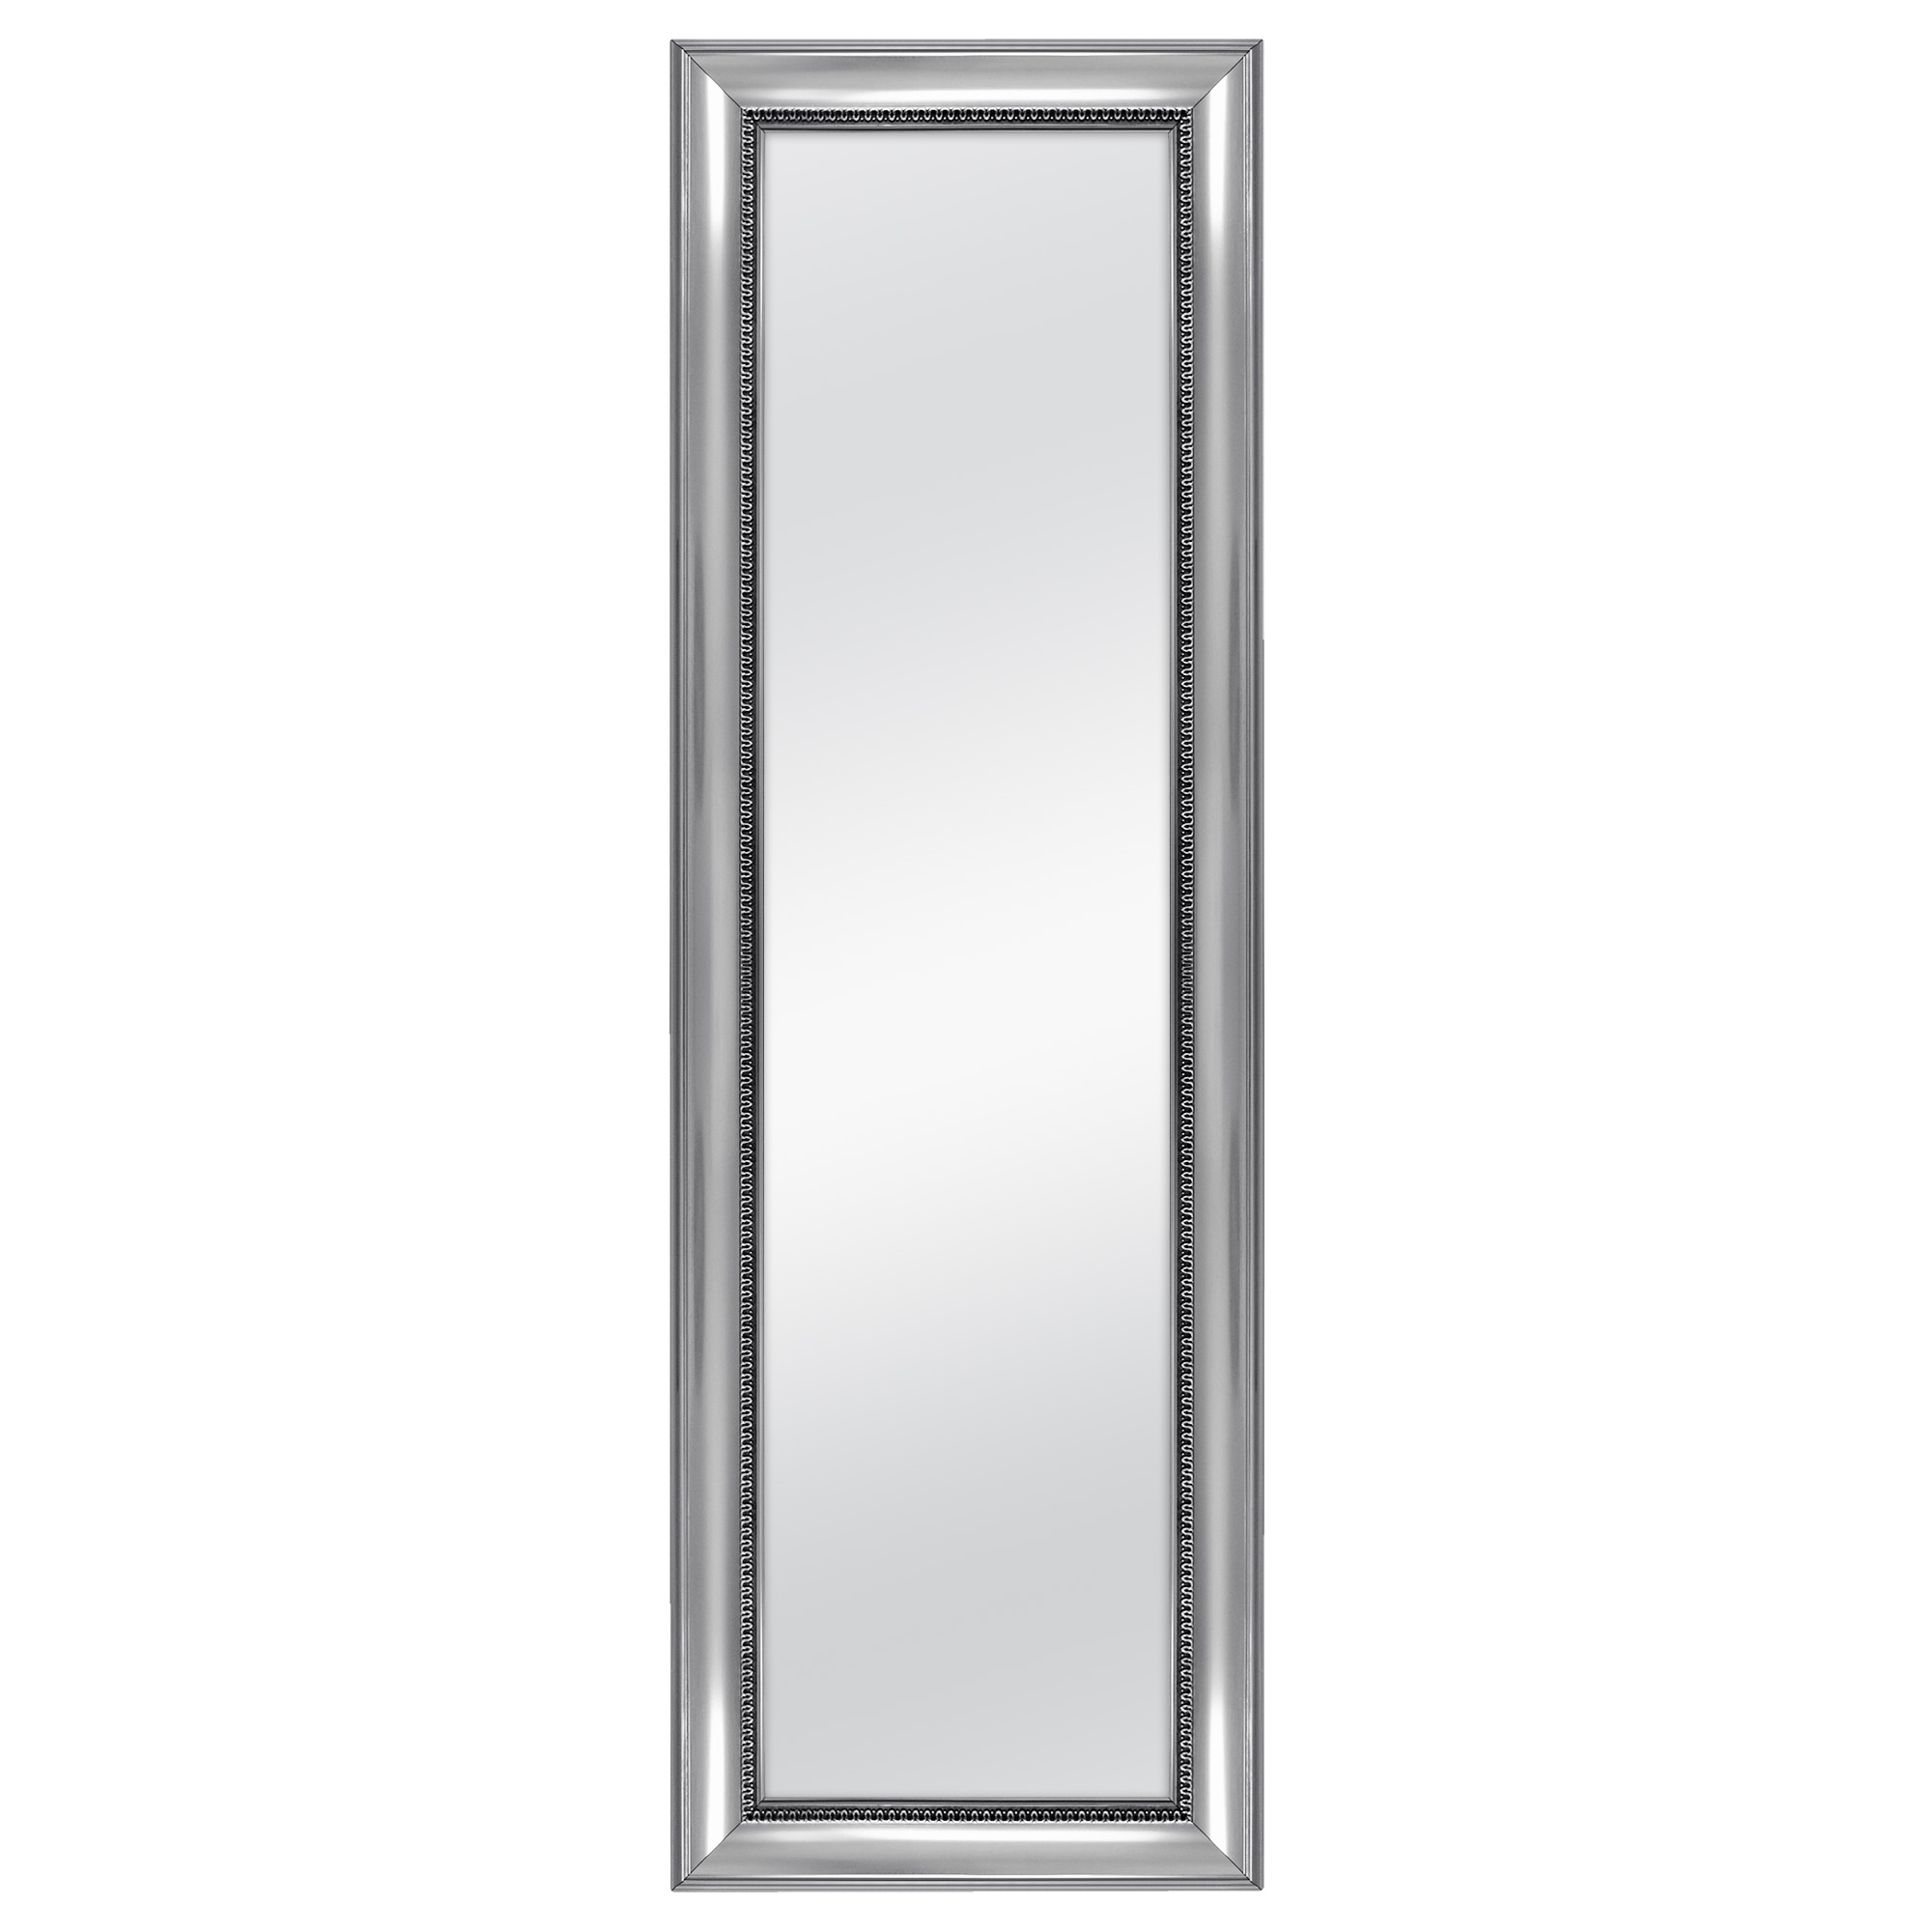 Ornate Full Length Wall Mirrors Regarding Favorite Mainstays Over The Door Wall Mirror, Silver Ornate Finish (View 13 of 20)